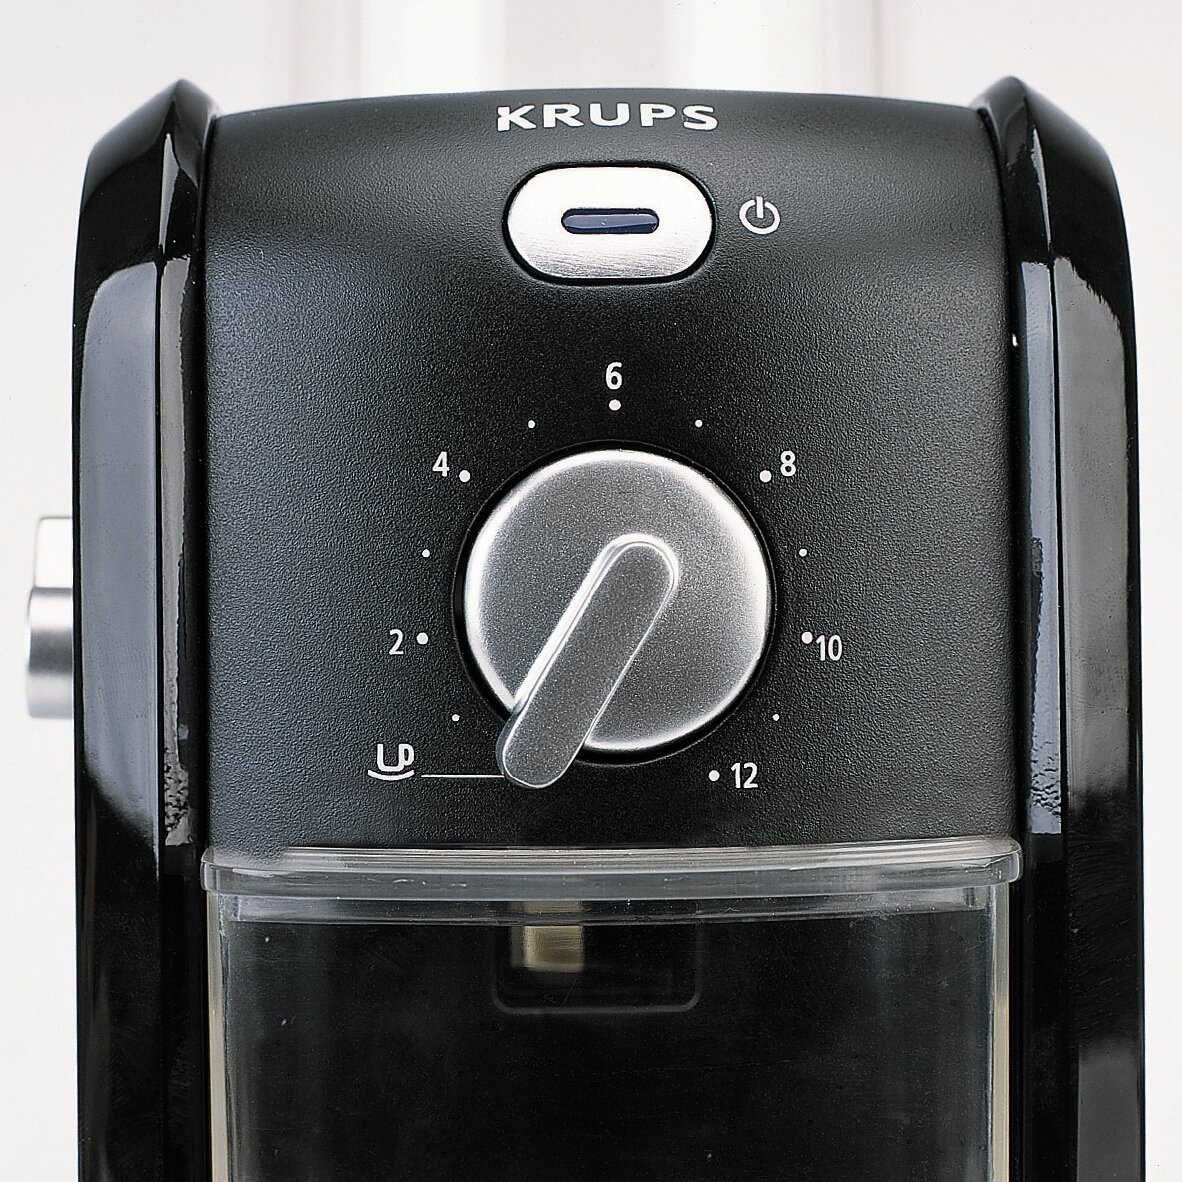 KRUPS GVX1-14 Coffee Grinder with Grid Size and Cup Selection and Stainless Steel Conical Burr, Black by KRUPS